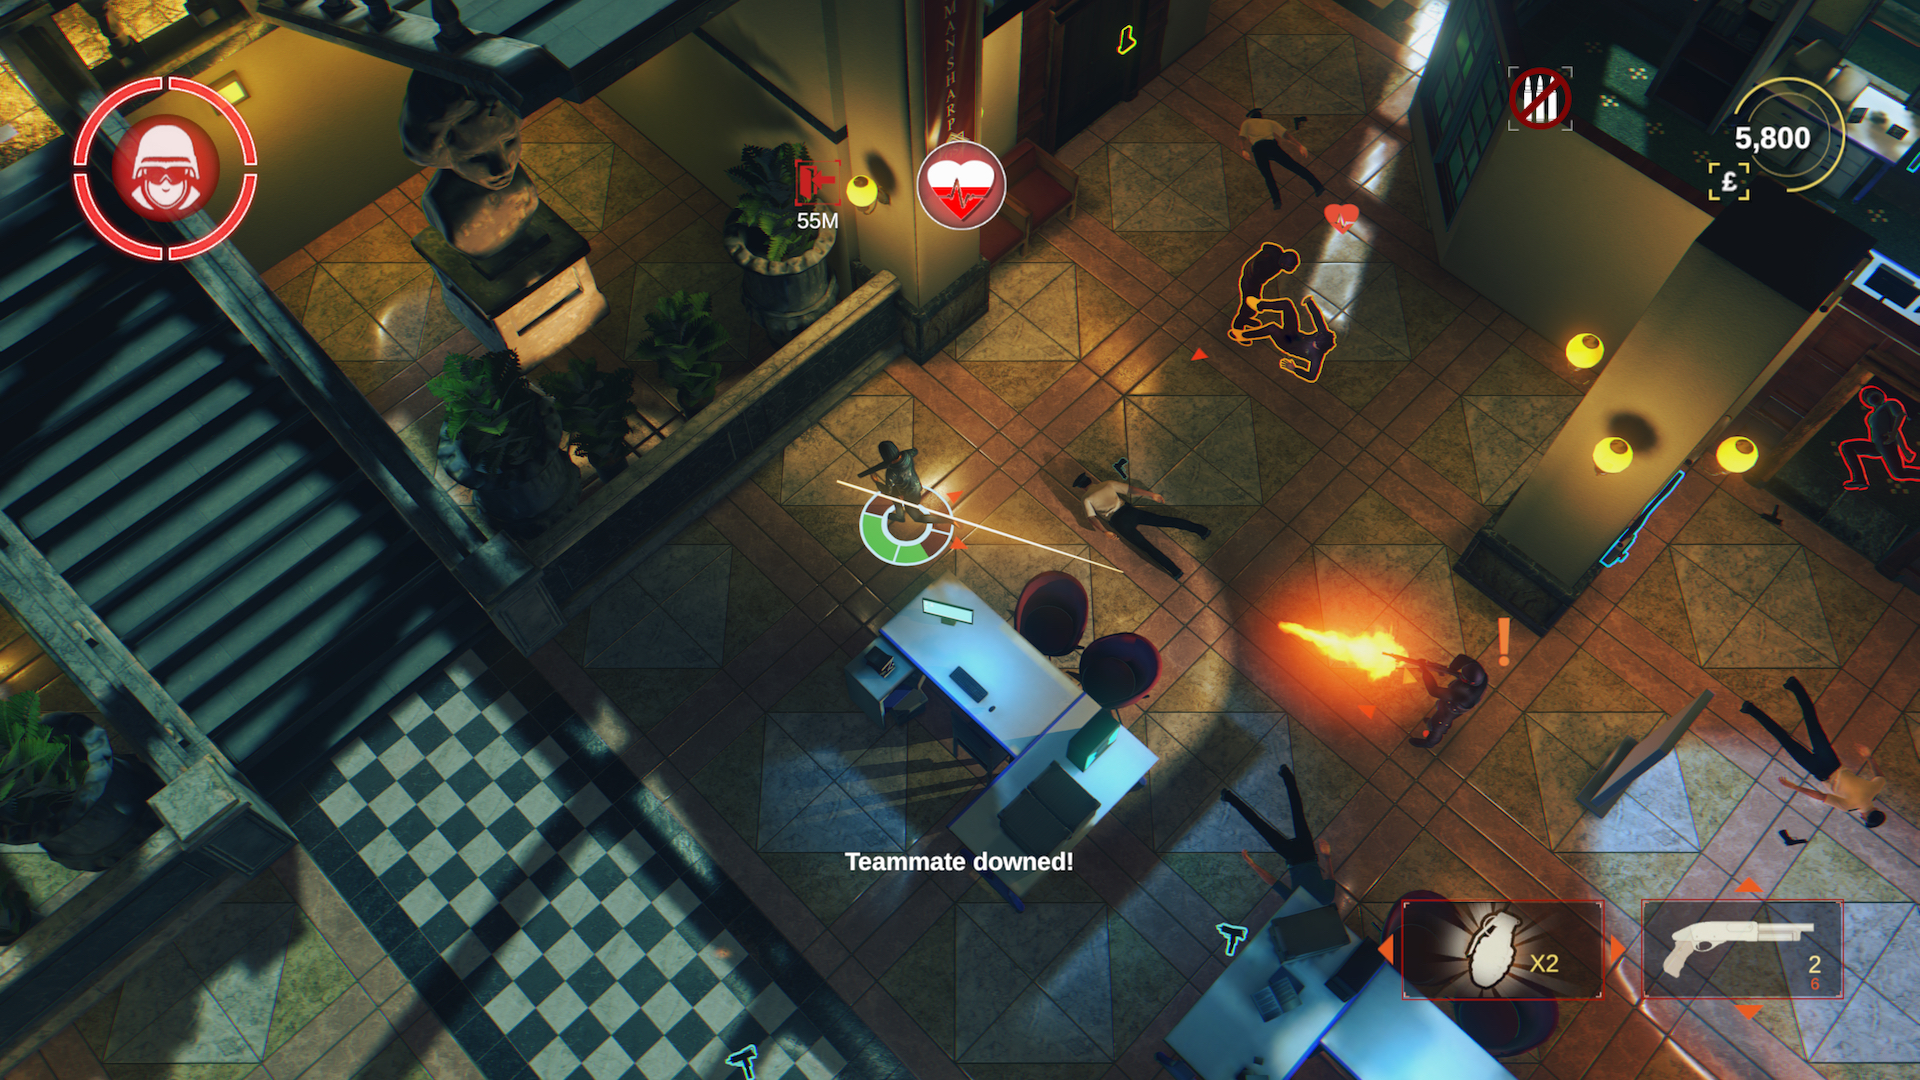 filthy-lucre-online-co-op-last-stand-ps4-review-screenshot